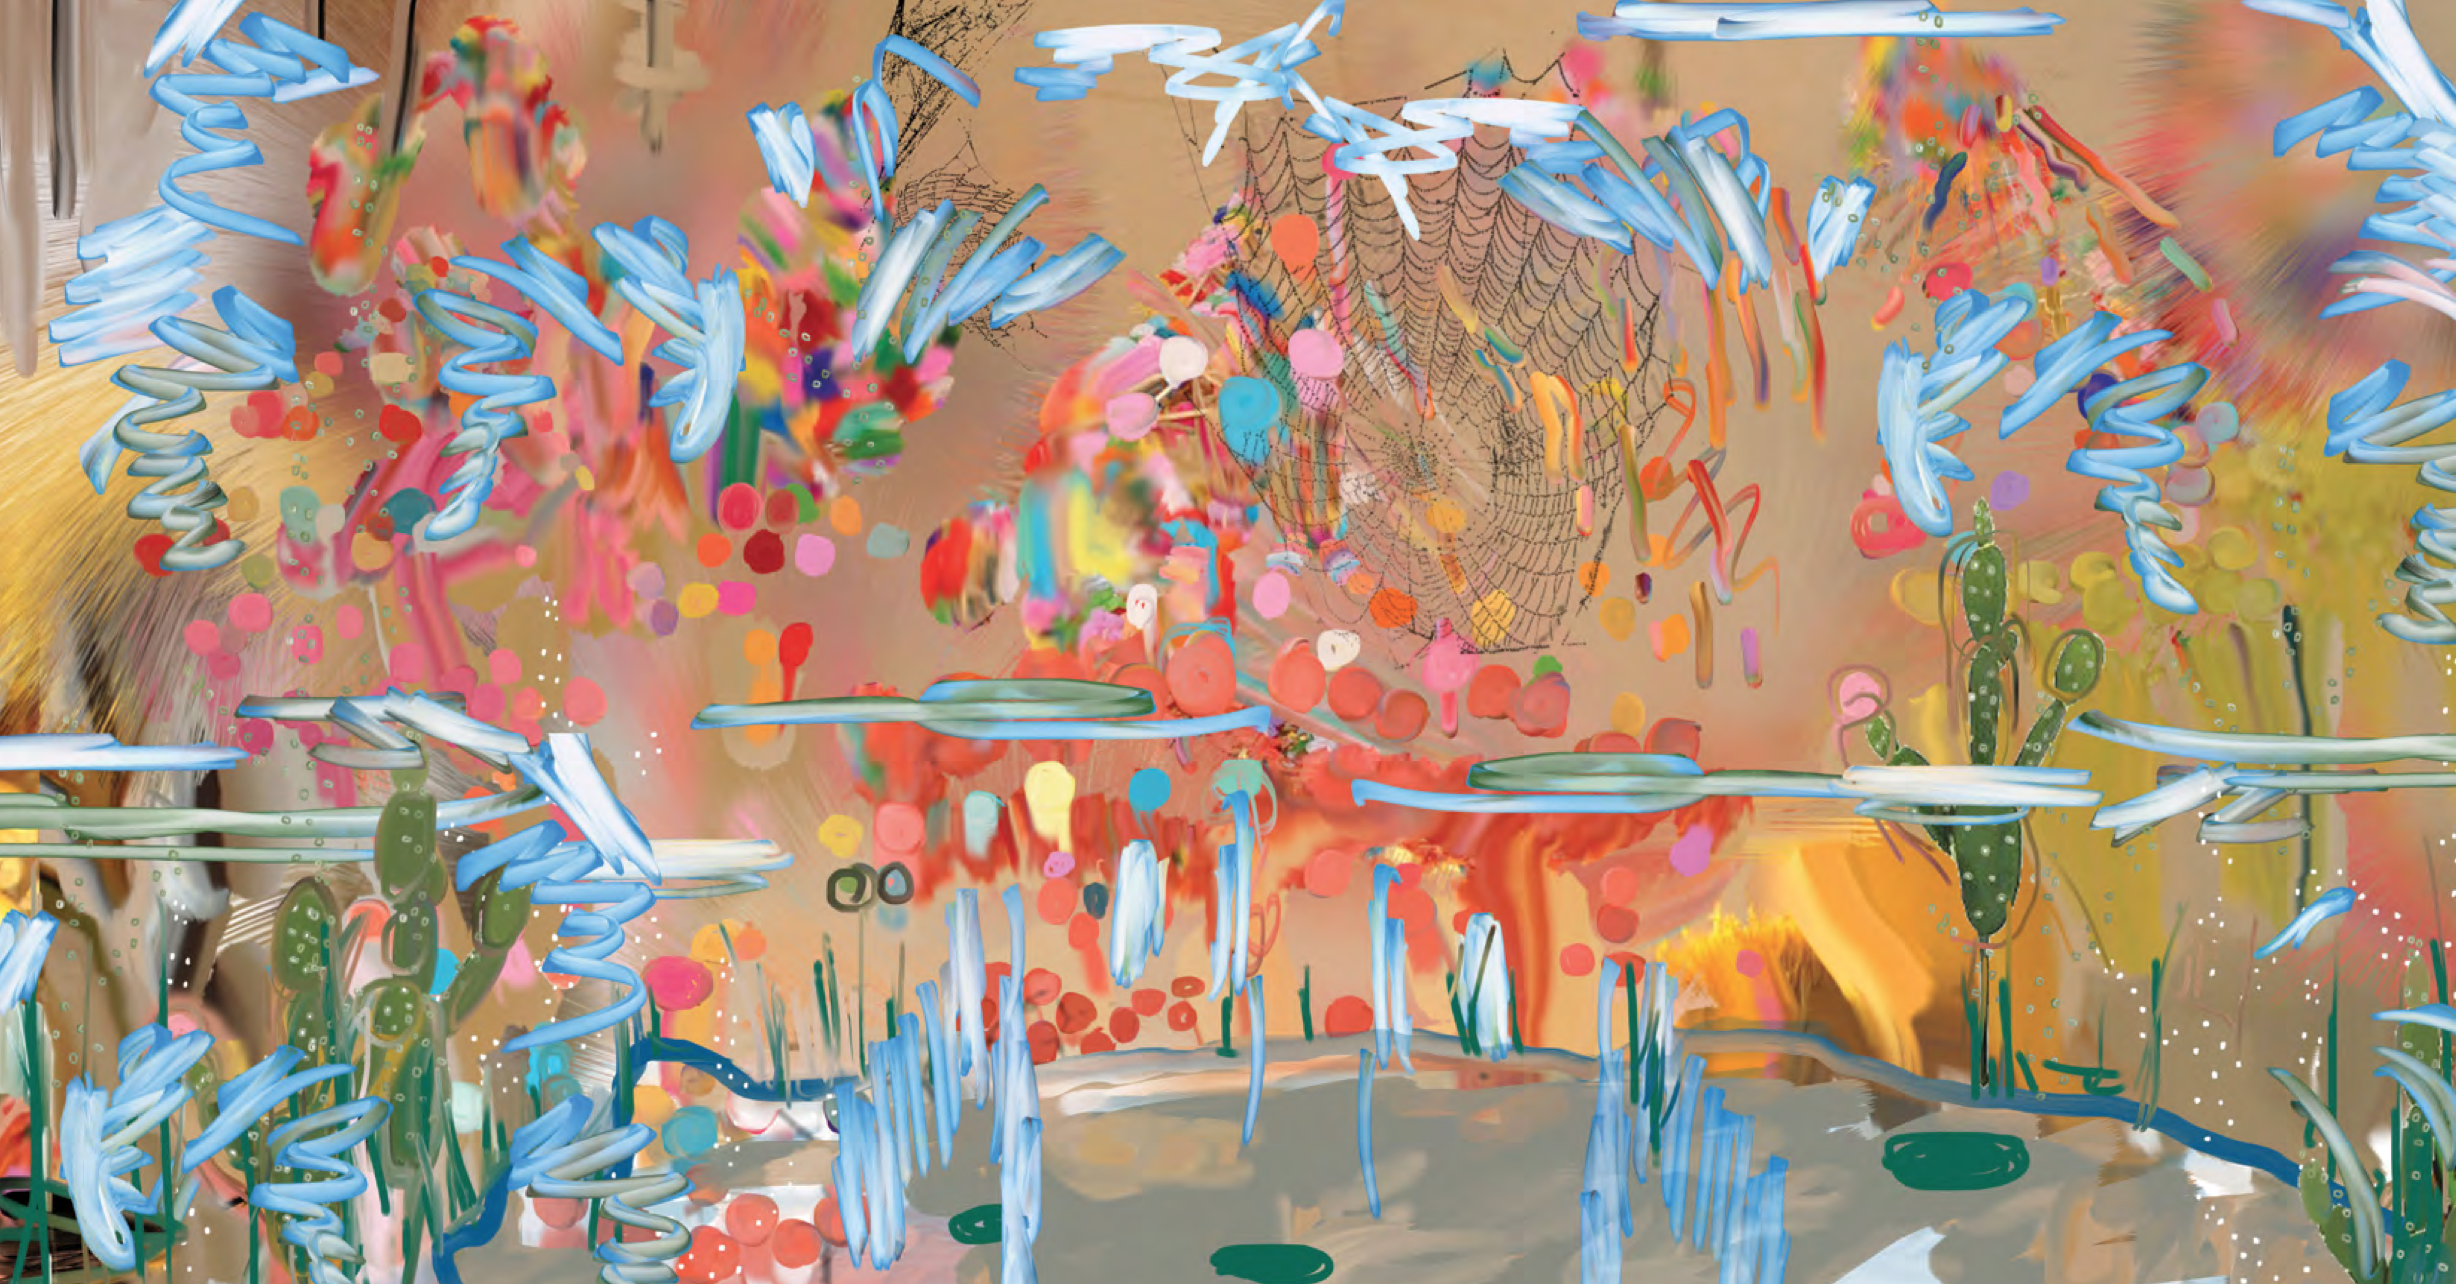 Petra Cortright, 2big teensbig, 2014. Digital painting on aluminum, 48 x 91.5 inches. Courtesy of the artist.